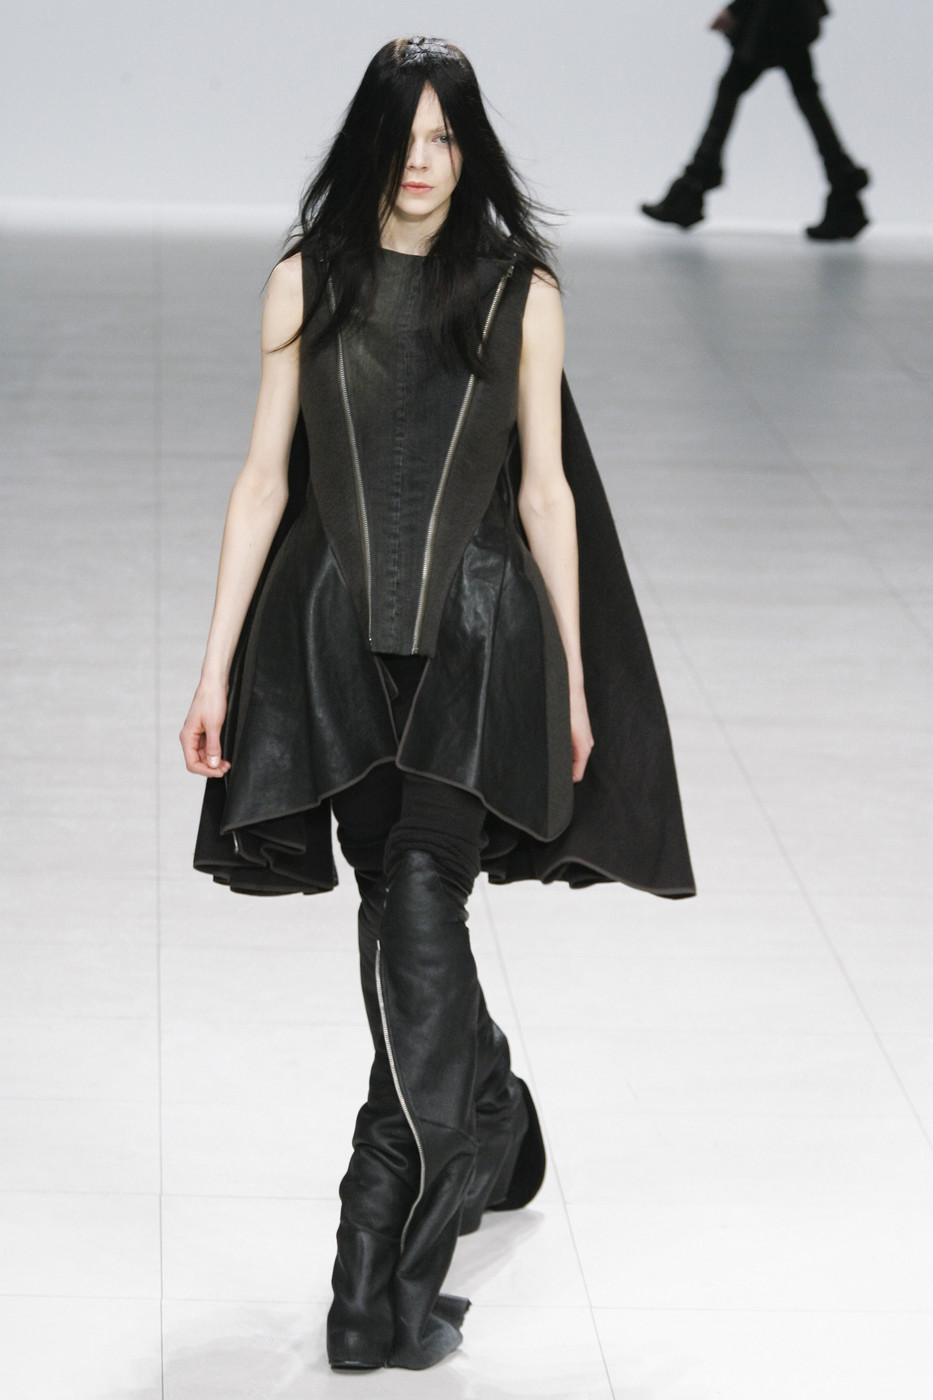 Rick+Owens+Fall+2008+0diNq386DO9x.jpg